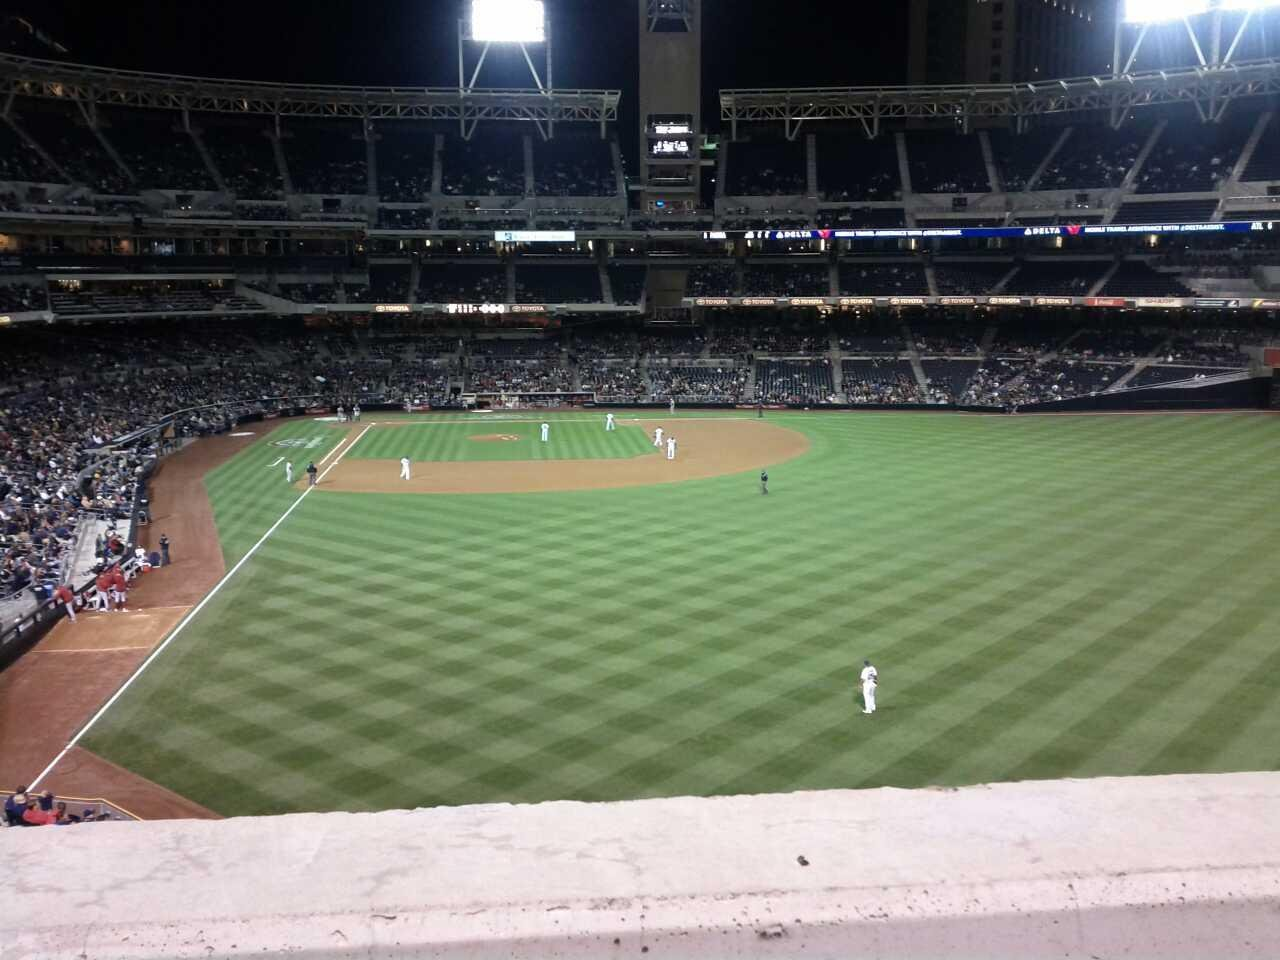 PETCO Park Section 227 Row 1 Seat 3